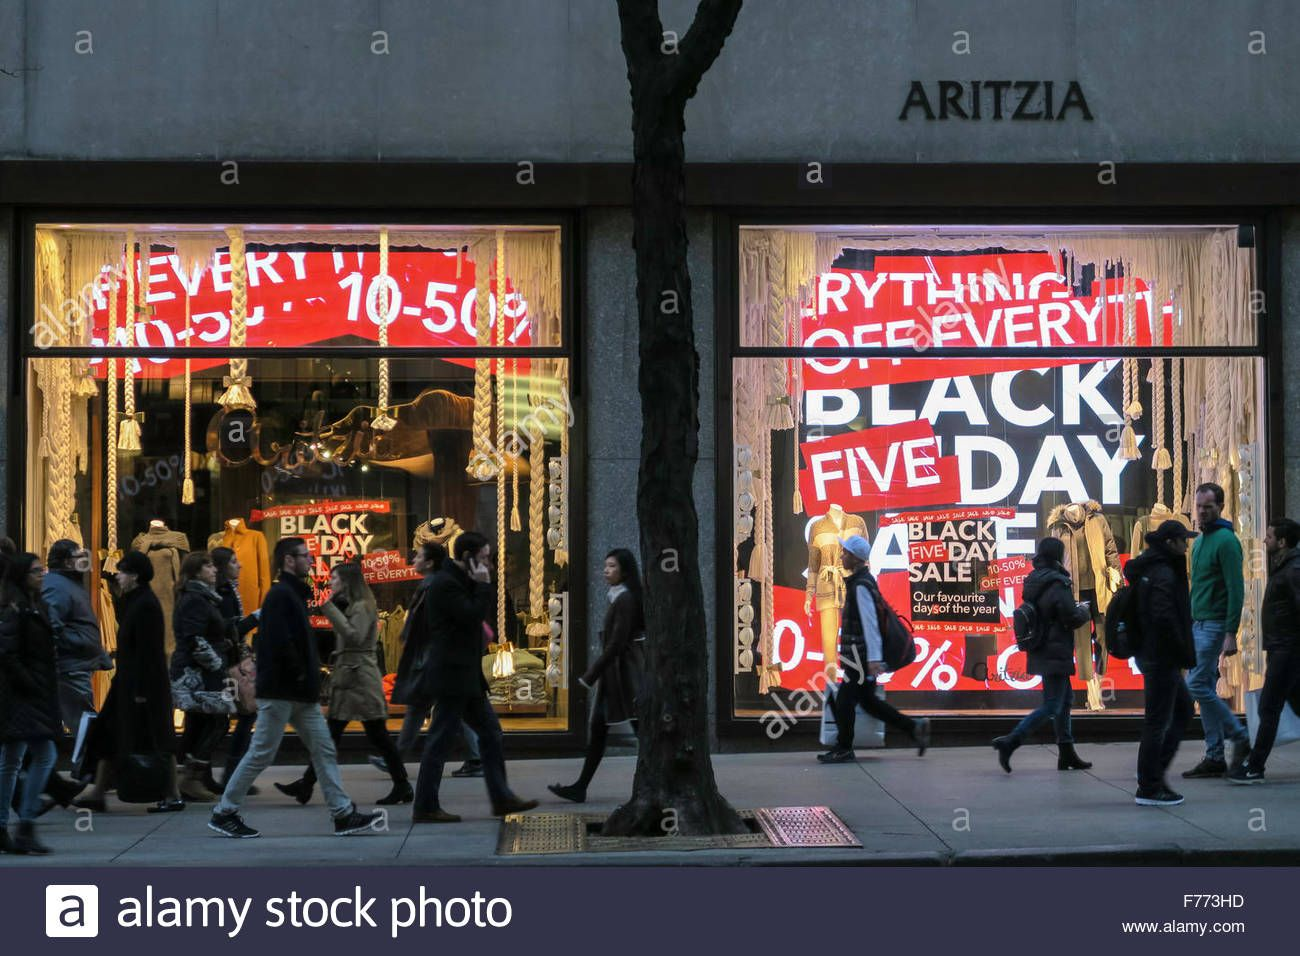 Aritzia Store Windows Advertising Black Friday Sales Nycstock Photo Black Friday Stores Black Friday Black Friday Window